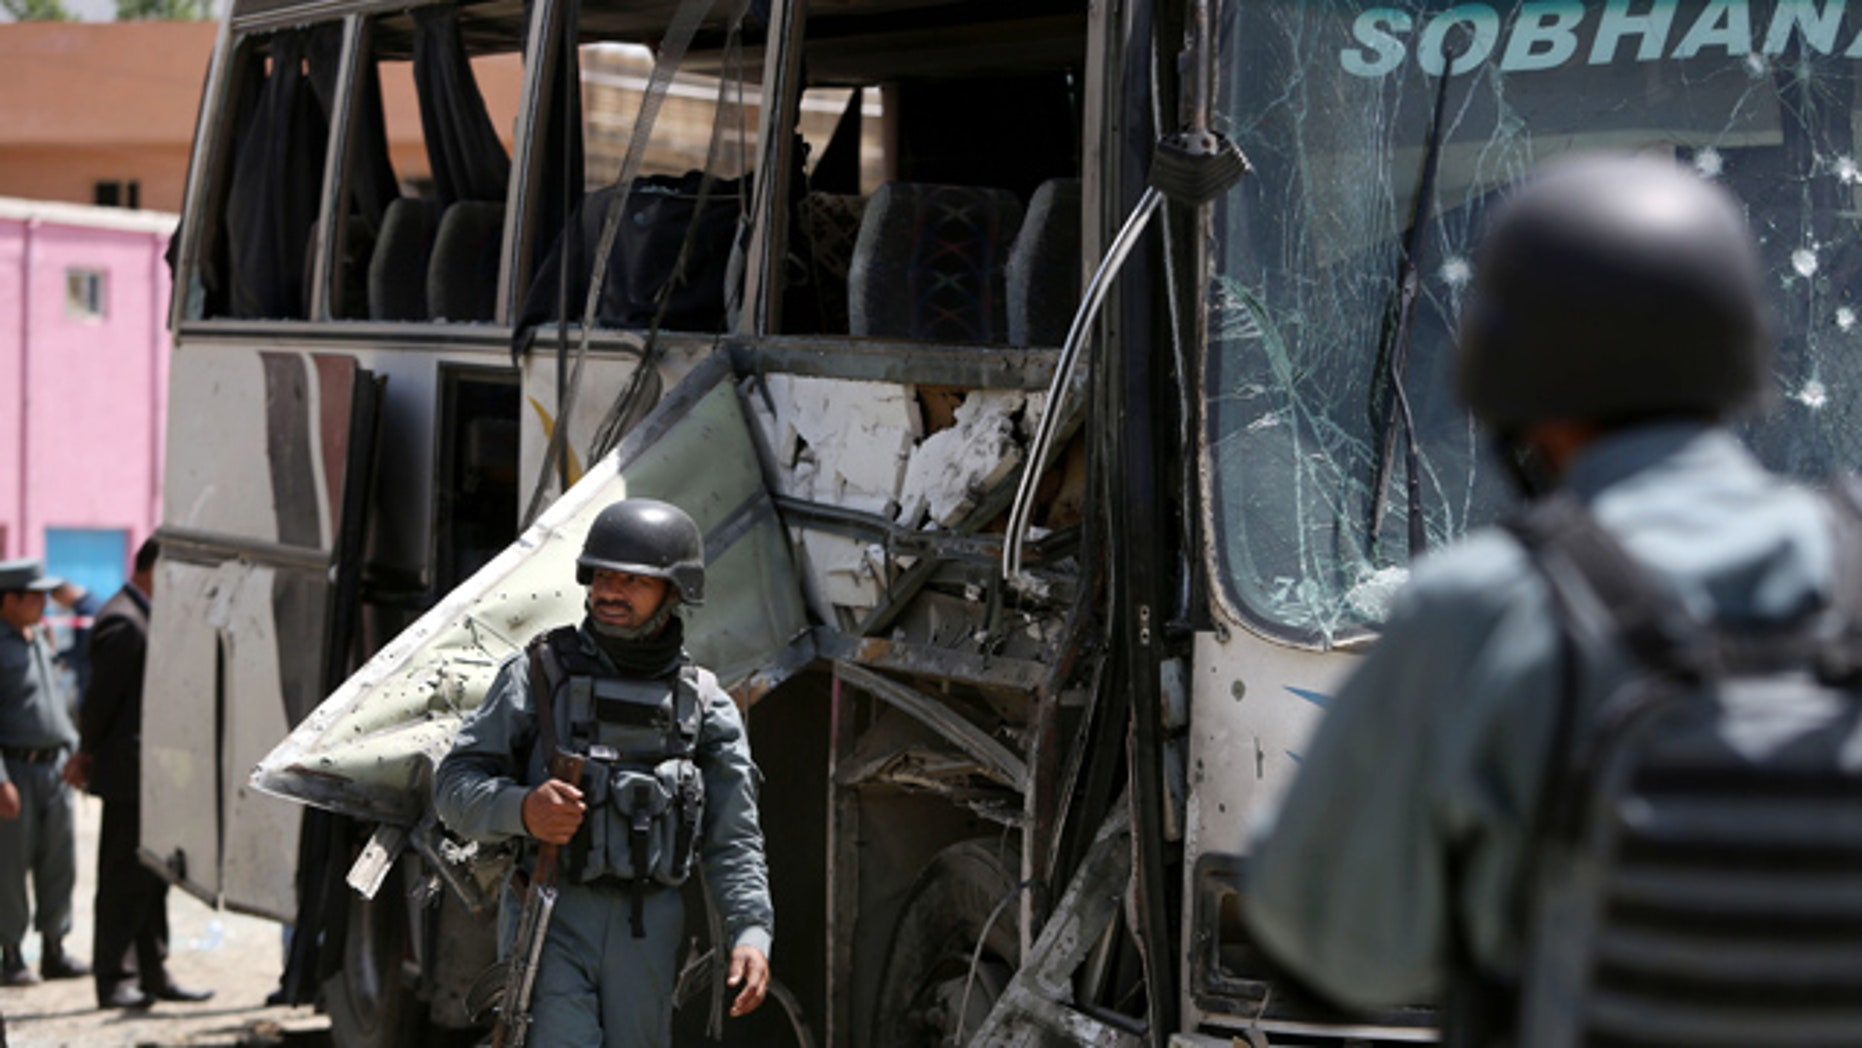 May 4, 2015: Afghan security forces inspect the site of a suicide attack in Kabul. An Afghan official says a suicide bomber struck a minibus carrying government employees in Kabul, killing at least one person and wounding more than a dozen. (AP Photo/Rahmat Gul)